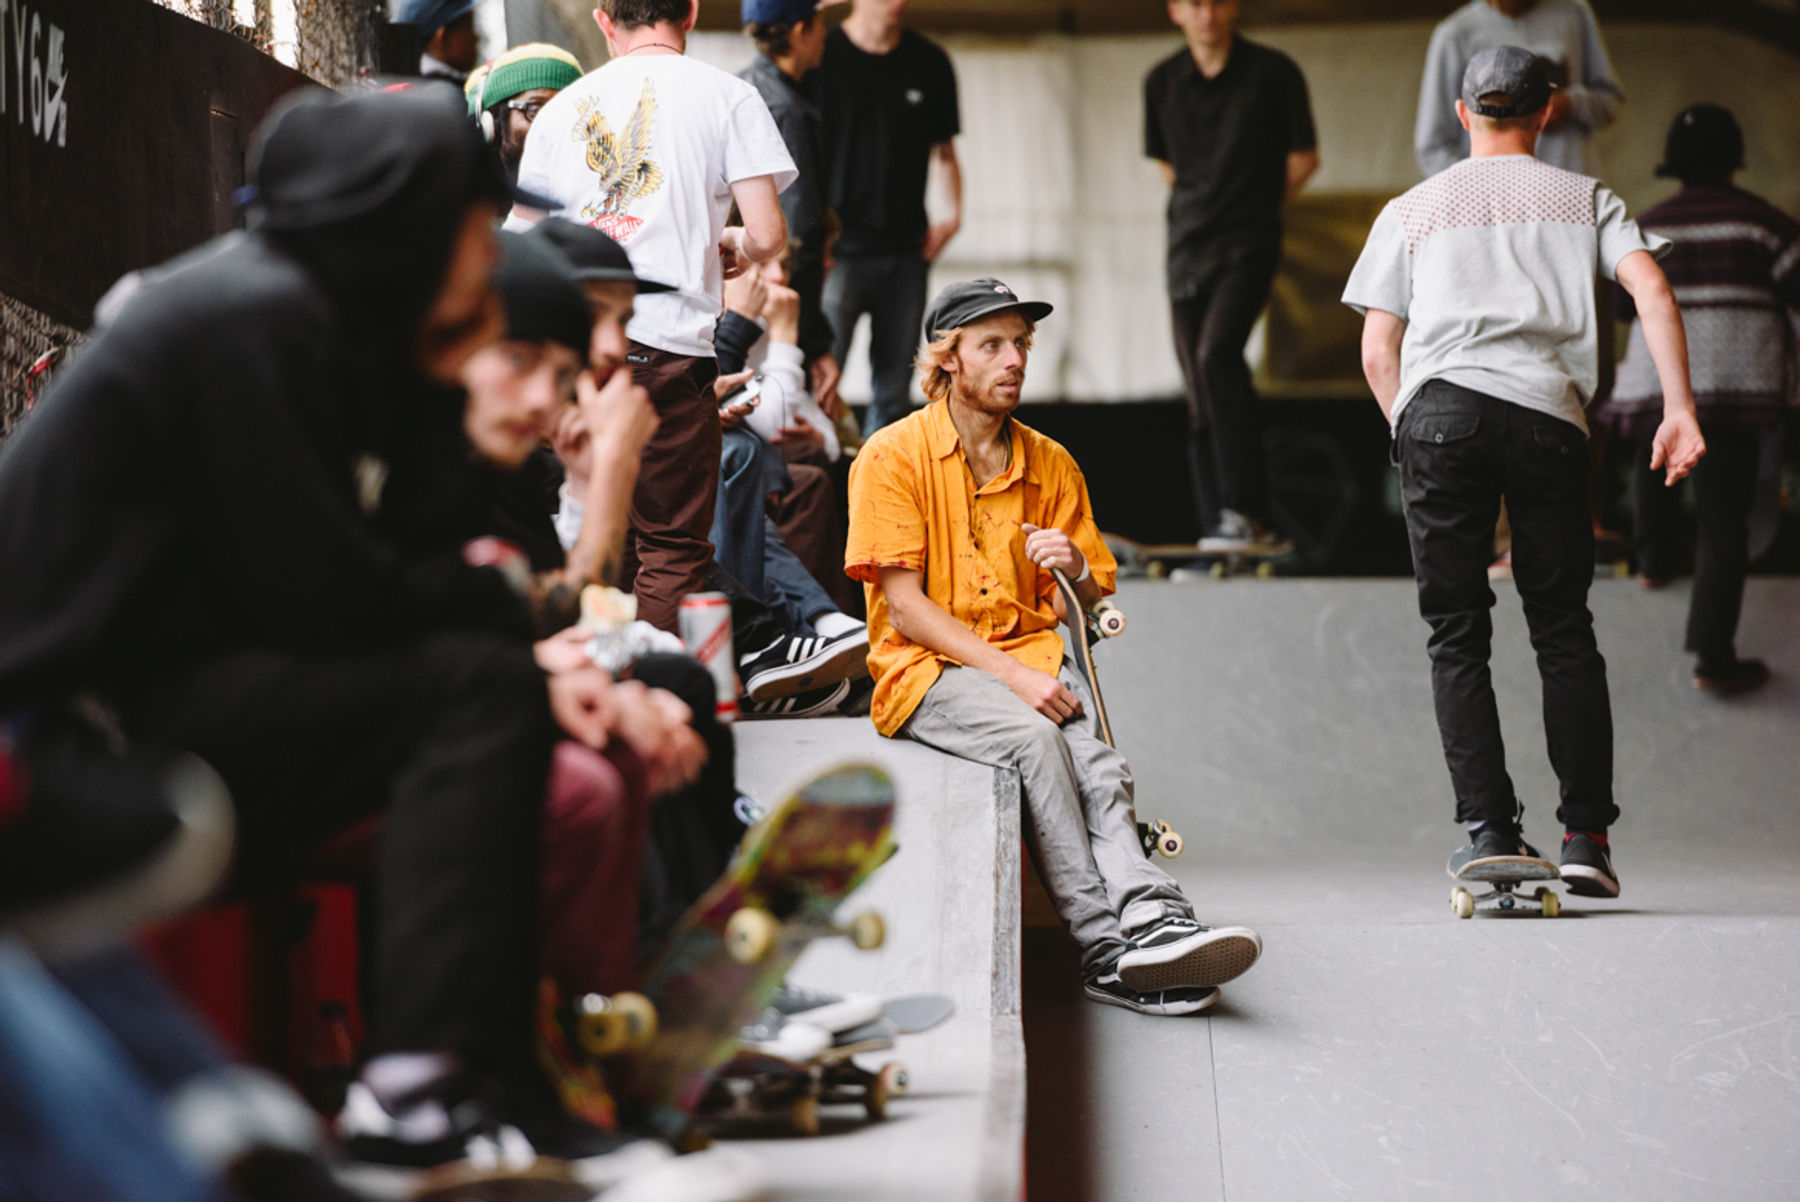 _IHC4729e-Chris-Oliver-Nike-SB-London-AM-Day-1-June-2015-Photographer-Maksim-Kalanep